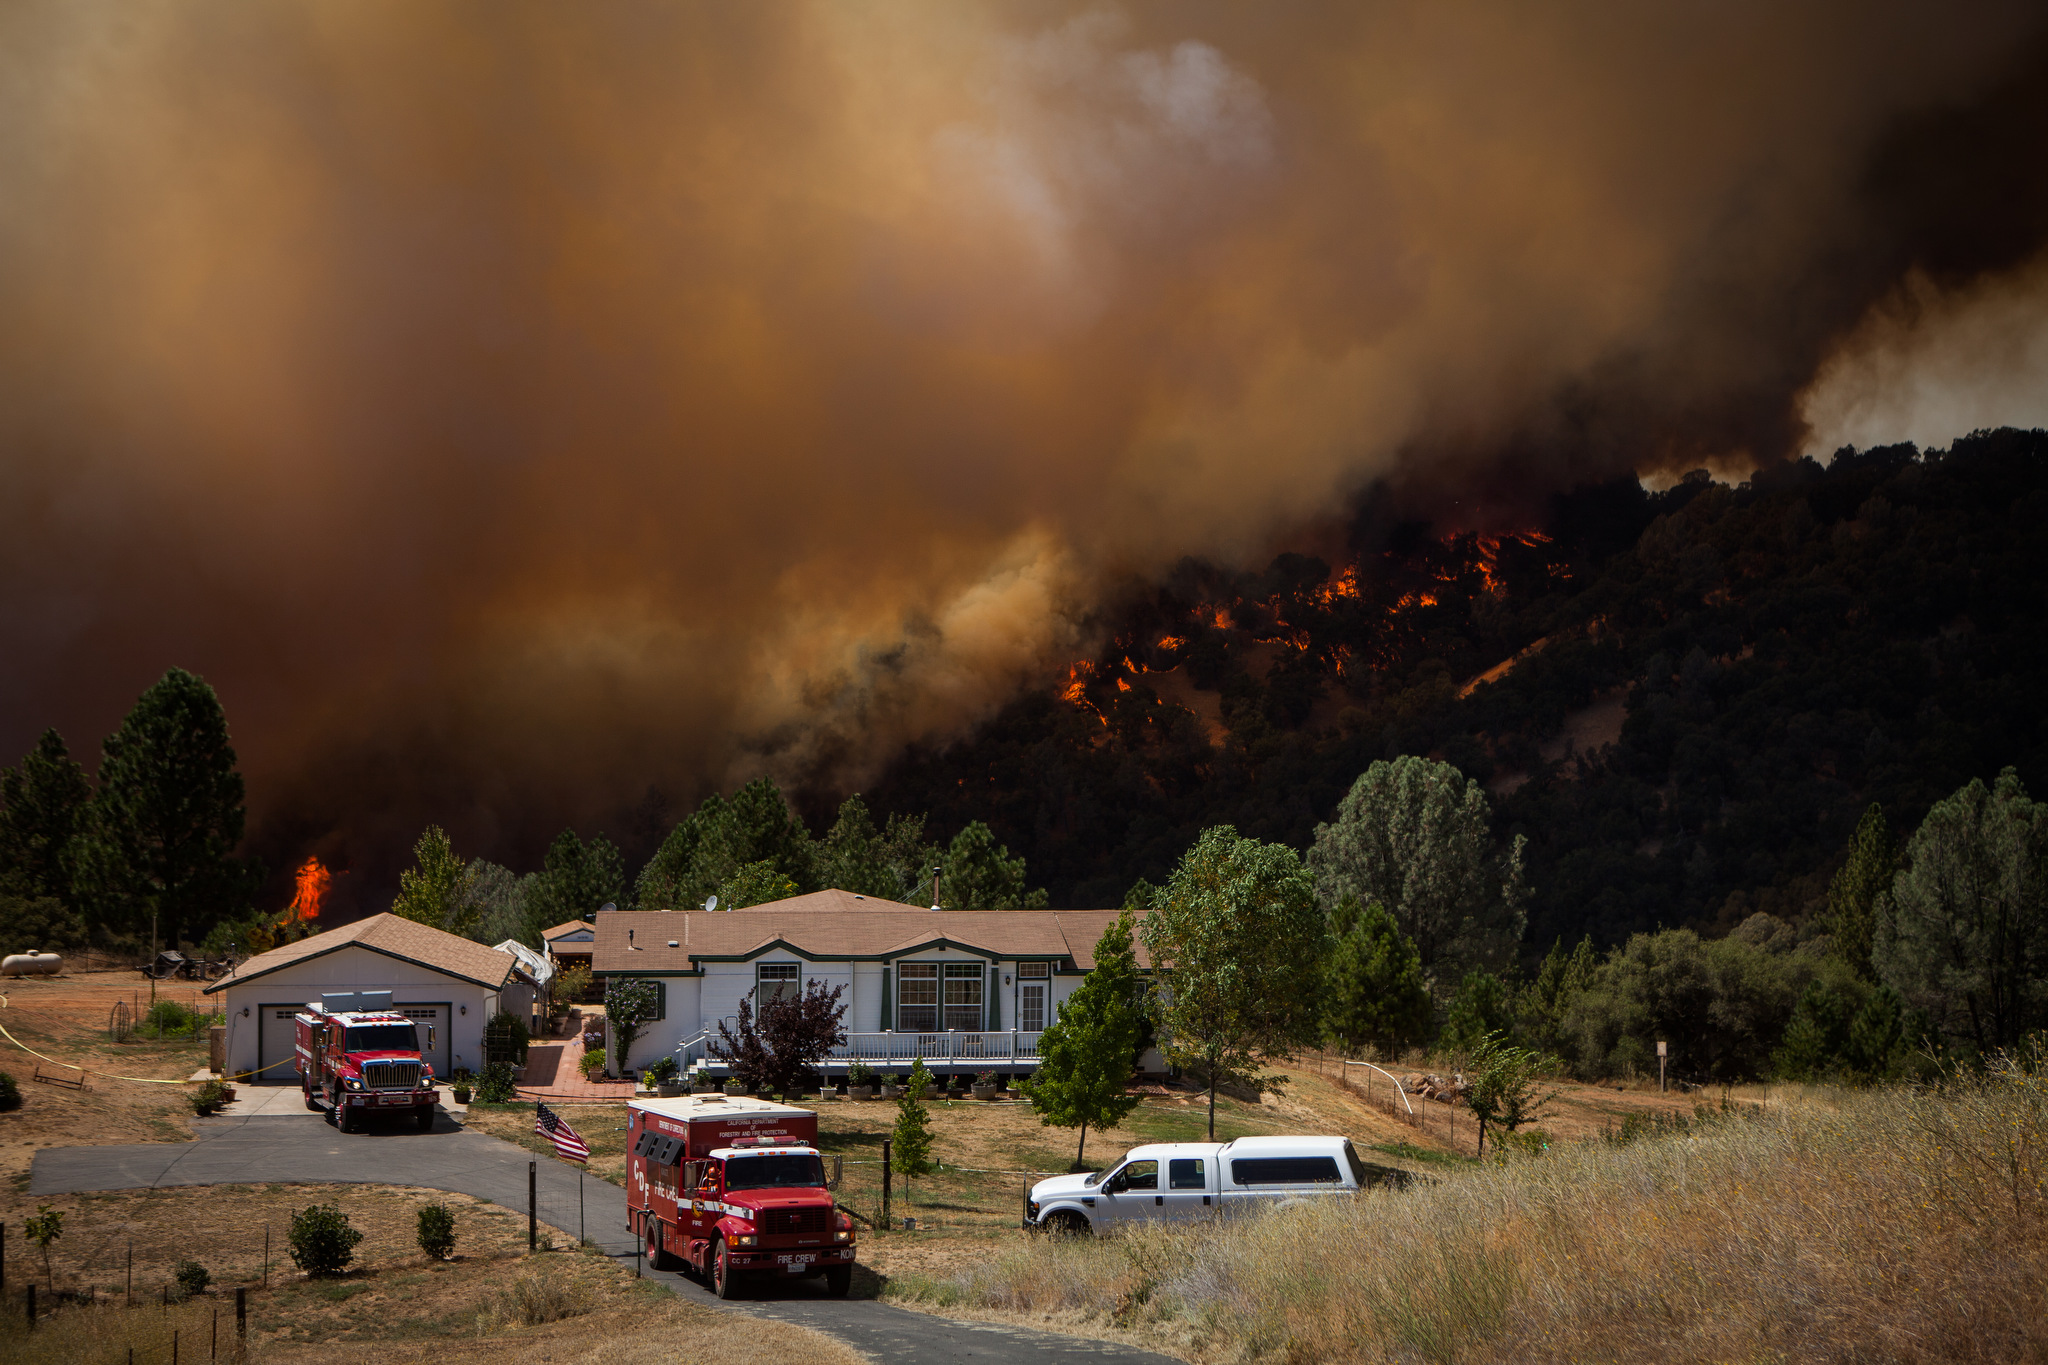 Firefighters protect an evacuated home while the Sand Fire burns behind it near Plymouth, California, July 26, 2014. The Sand Fire destroyed 20 homes and burned more than 4,200 acres near the town of Plymouth.